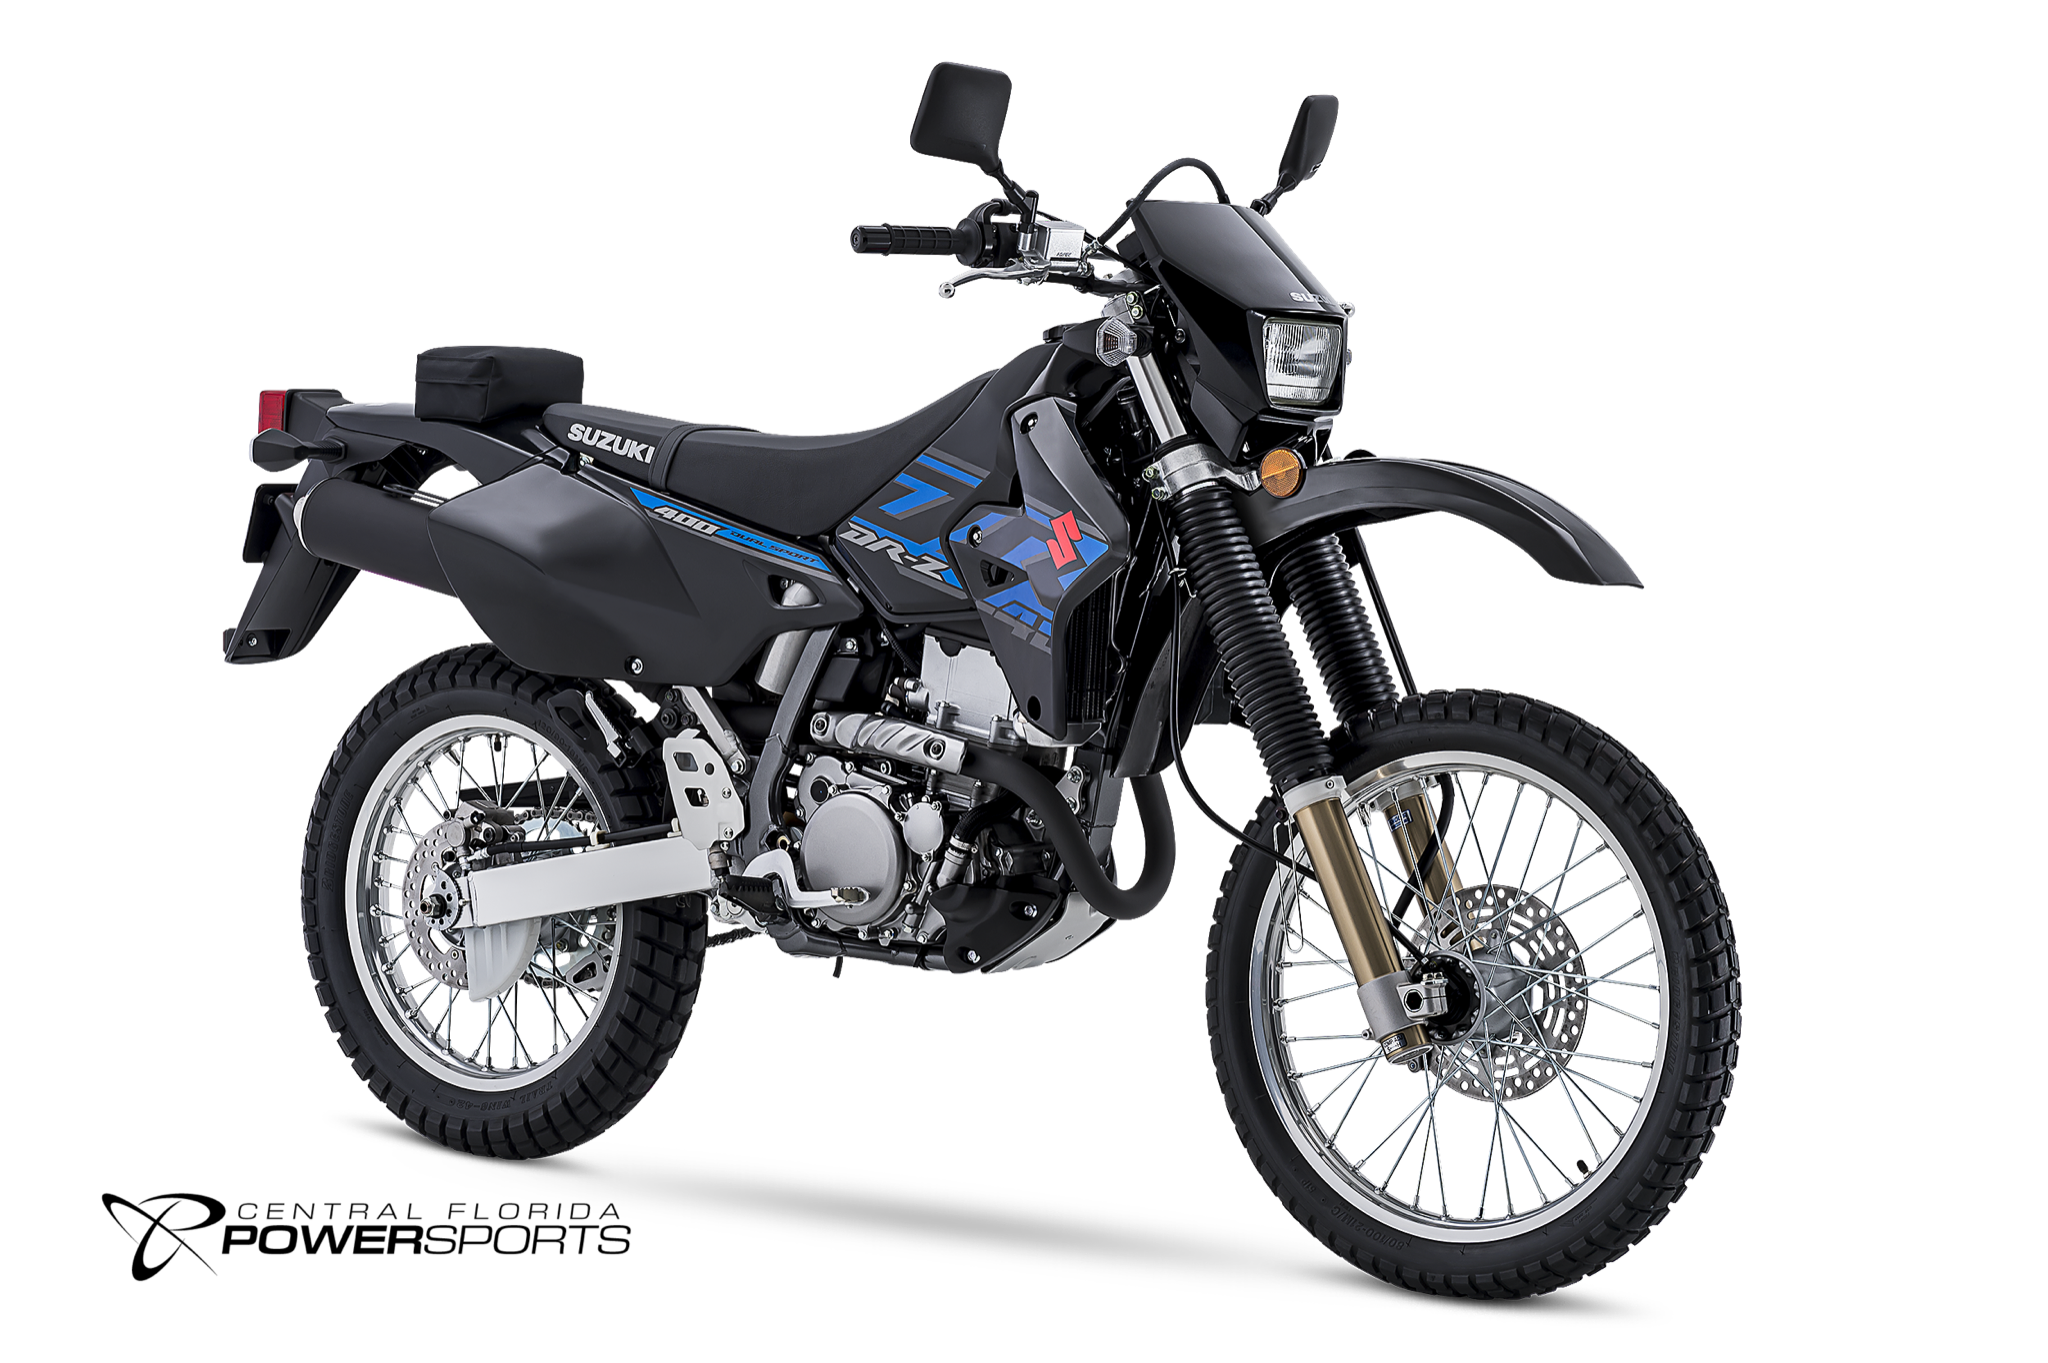 2017 suzuki dr-z400s motorcycle for sale - orlando, fl bike dealer